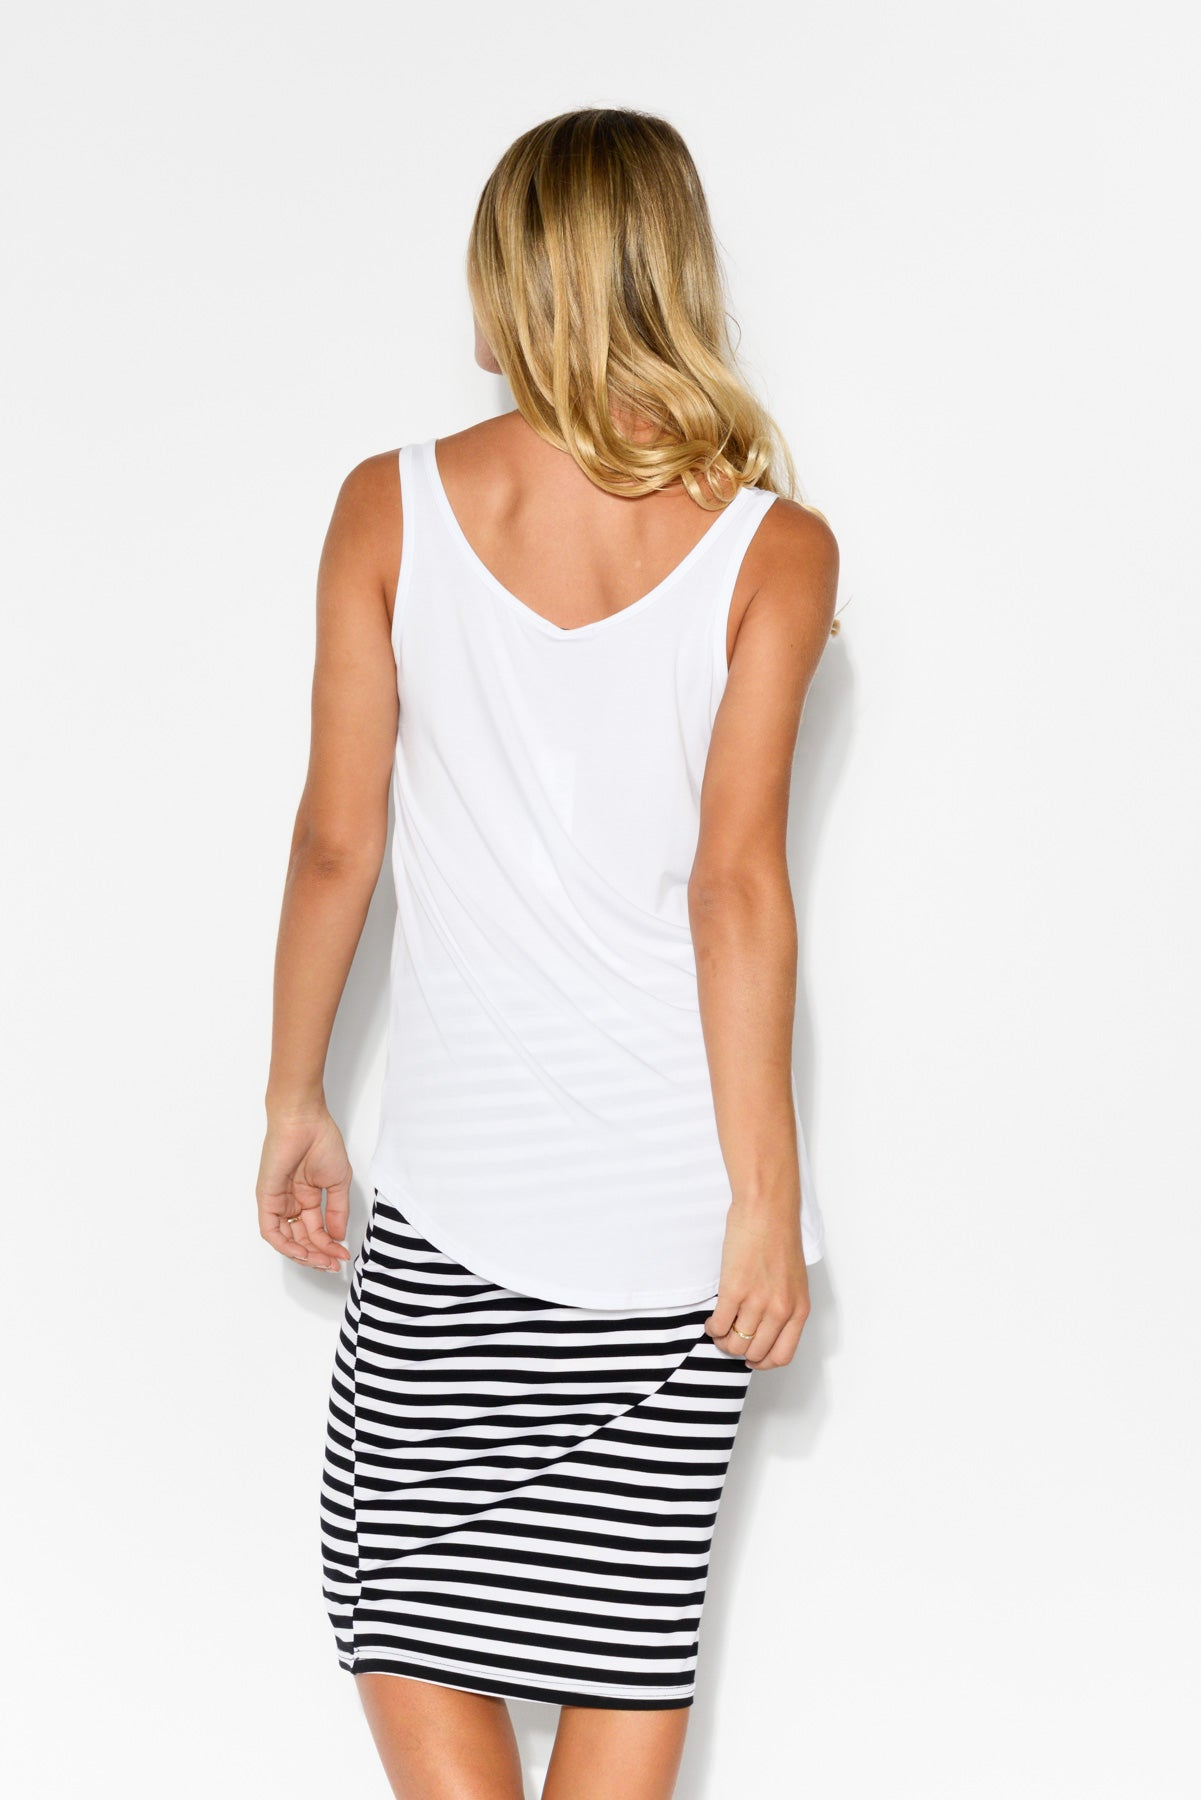 White Modal Singlet Top - Blue Bungalow